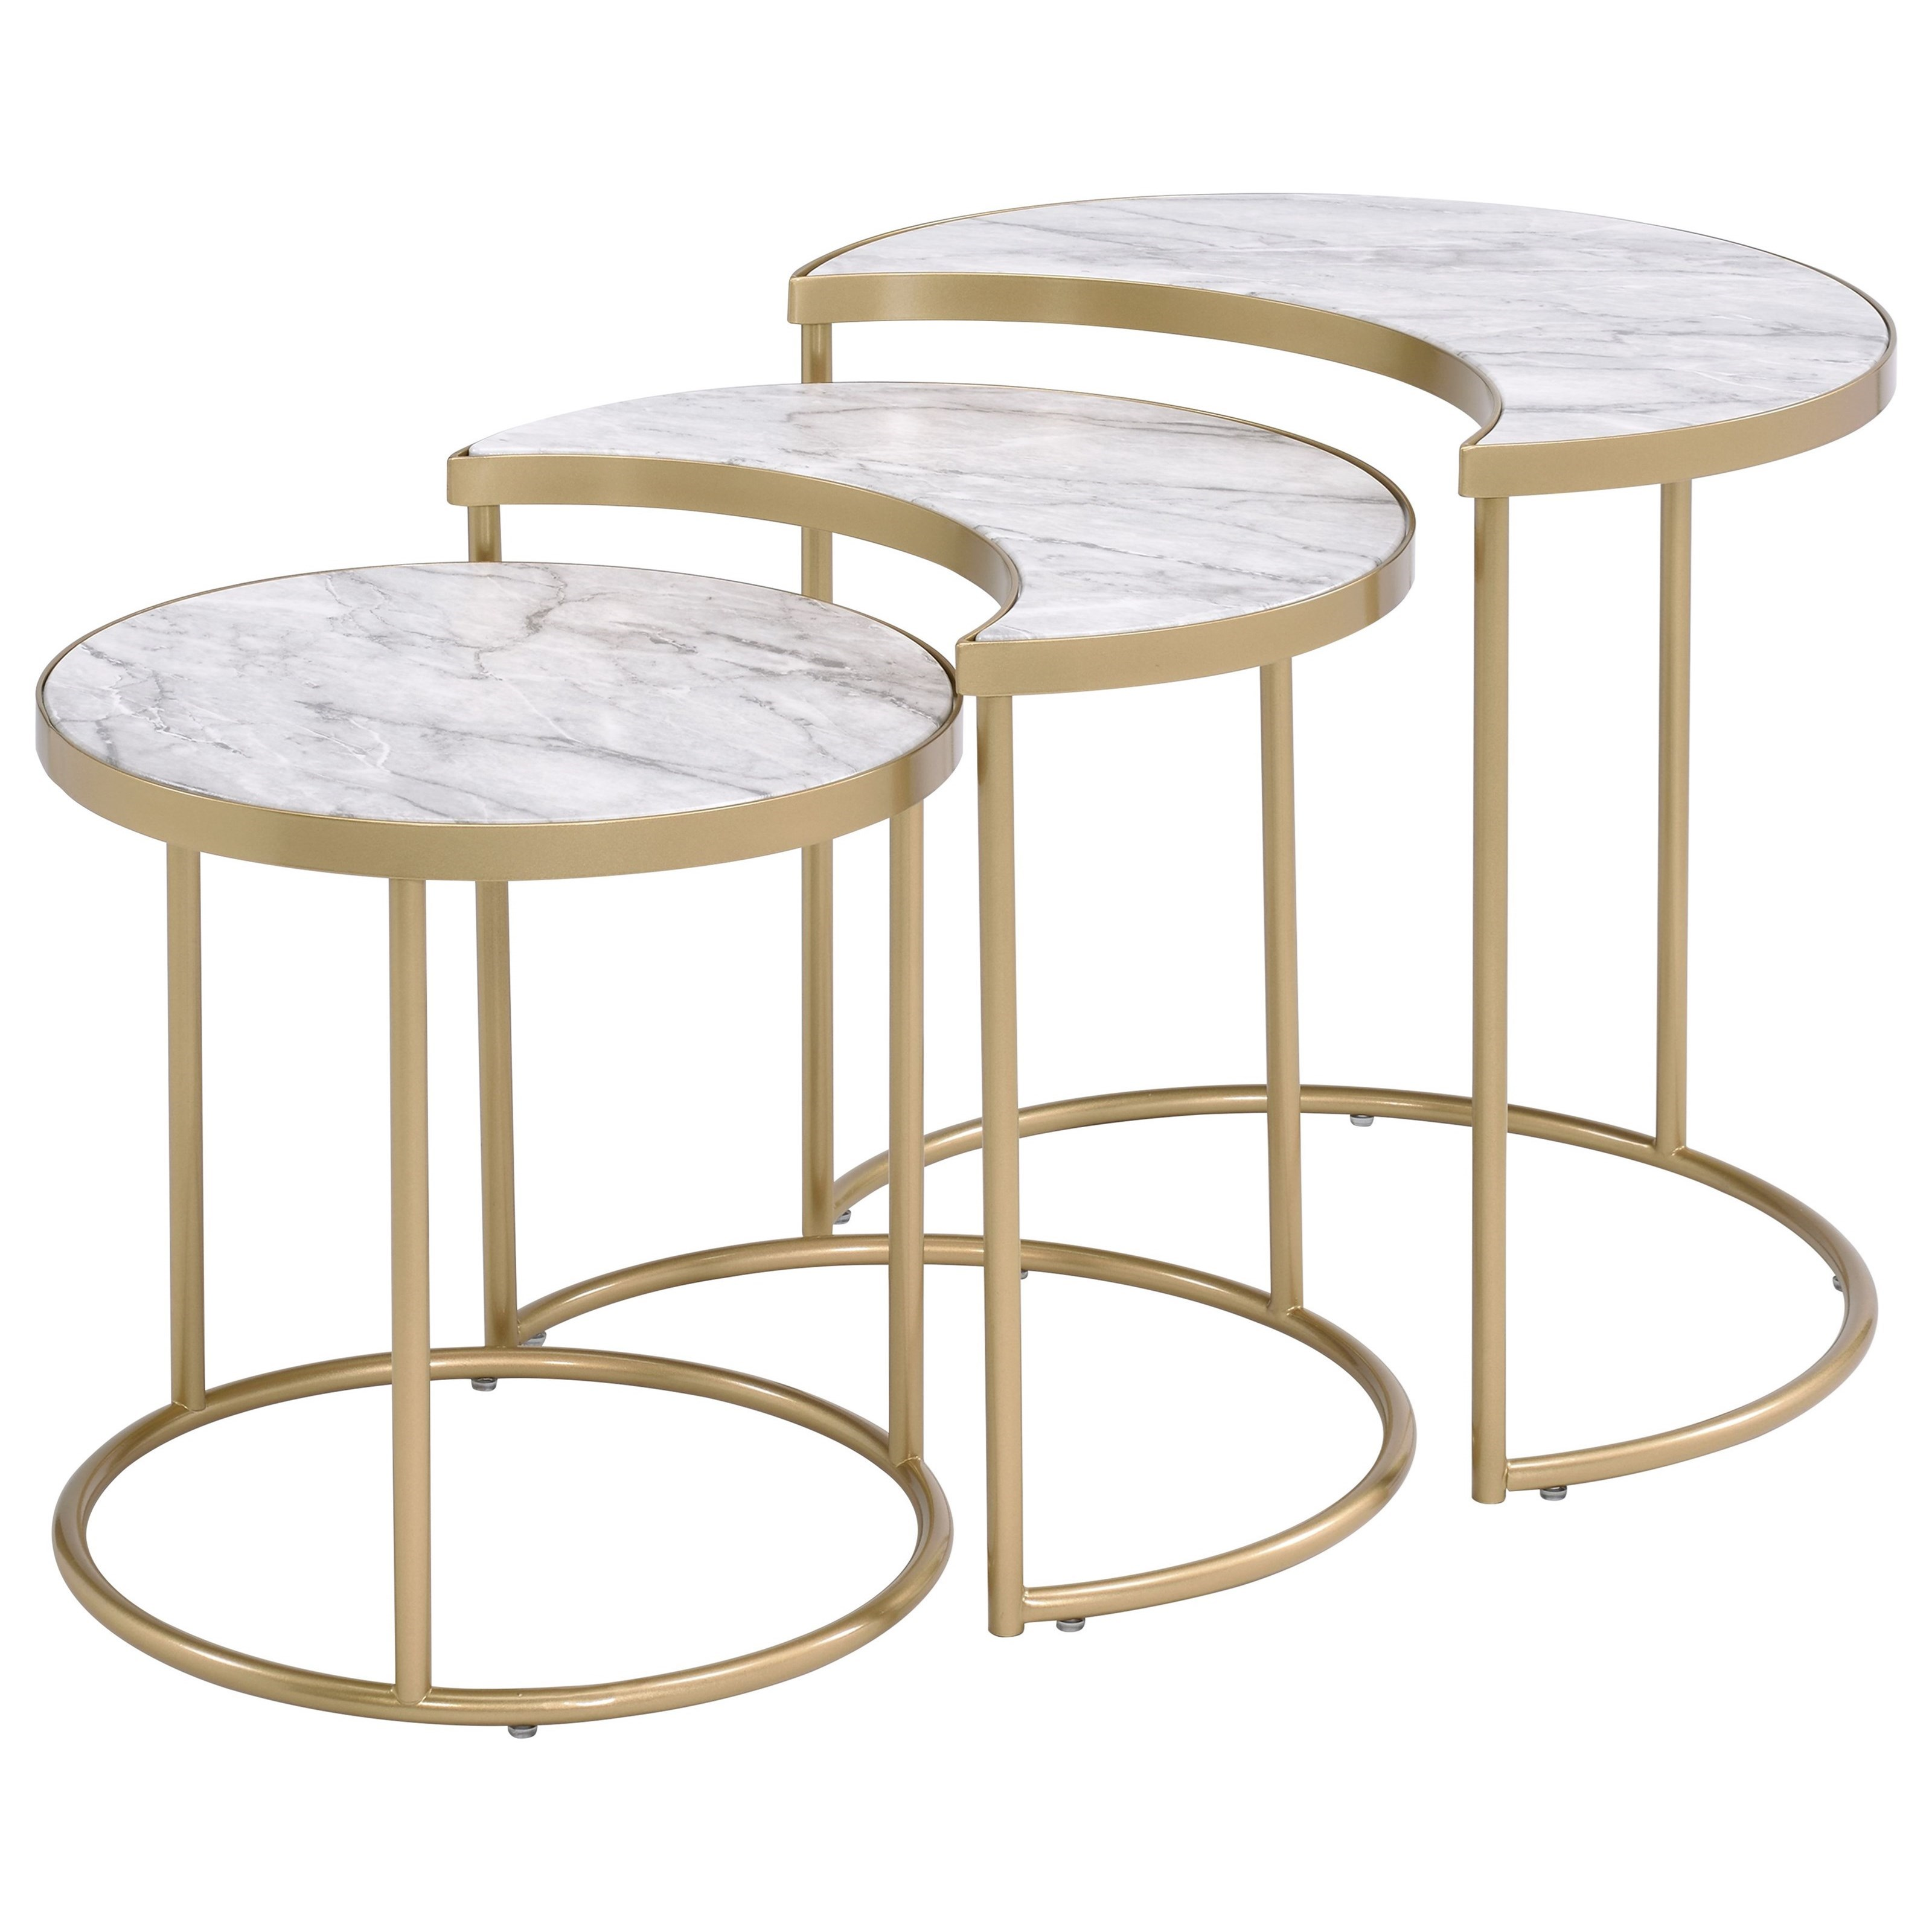 Anpay 3Pc Pack Nesting Tables by Acme Furniture at Carolina Direct